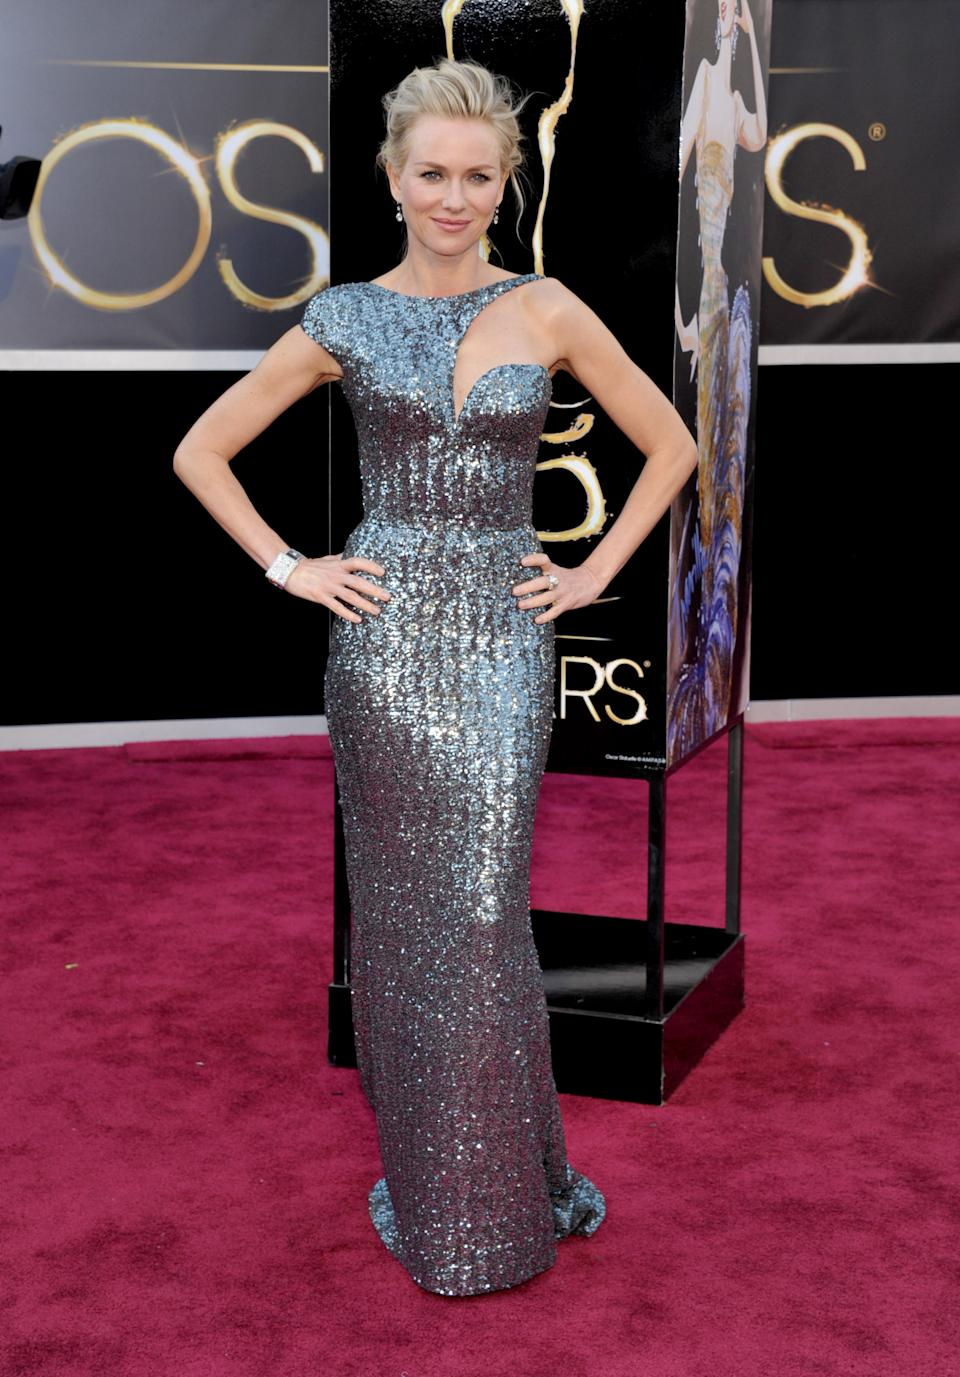 Actress Naomi Watts arrives at the Oscars at the Dolby Theatre on Sunday Feb. 24, 2013, in Los Angeles. (Photo by John Shearer/Invision/AP)